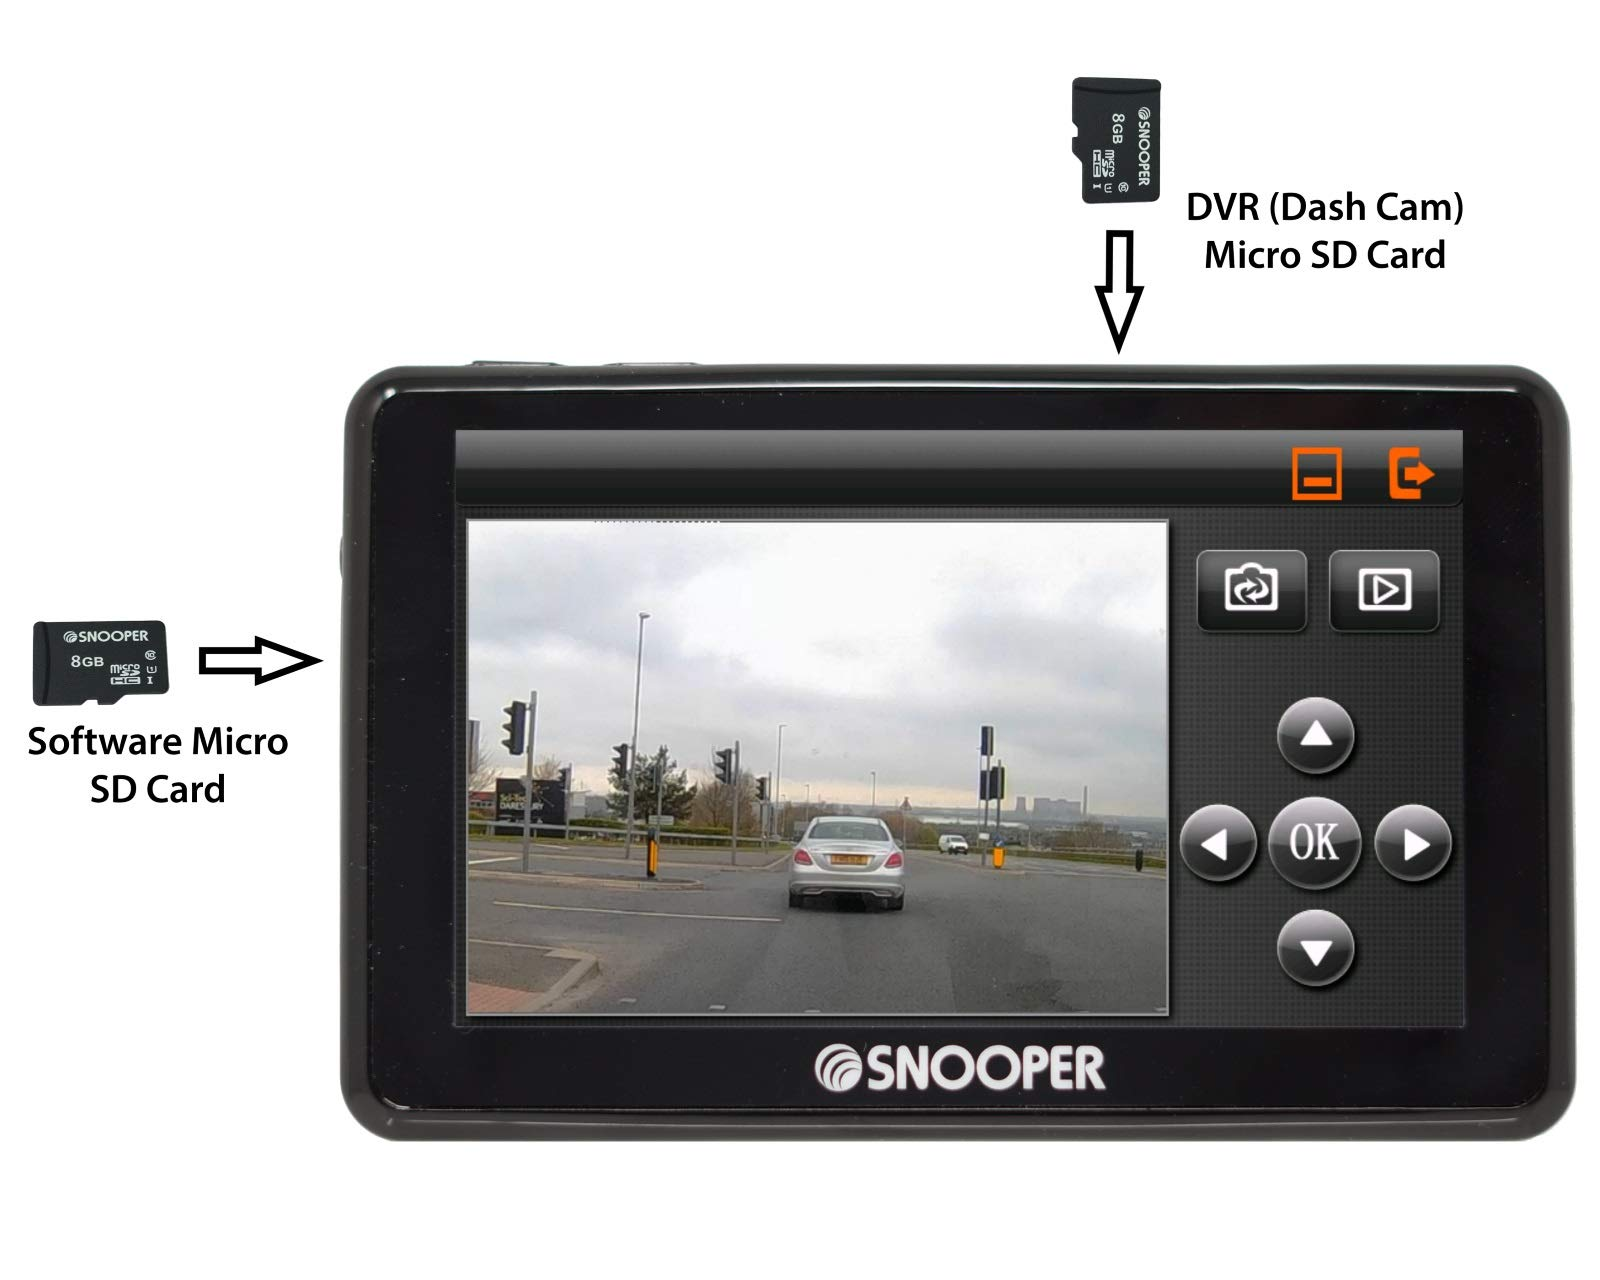 Snooper-My-Speed-DVR-G2-Speed-Limit-und-Kamera-Alert-System-mit-Dash-Cam